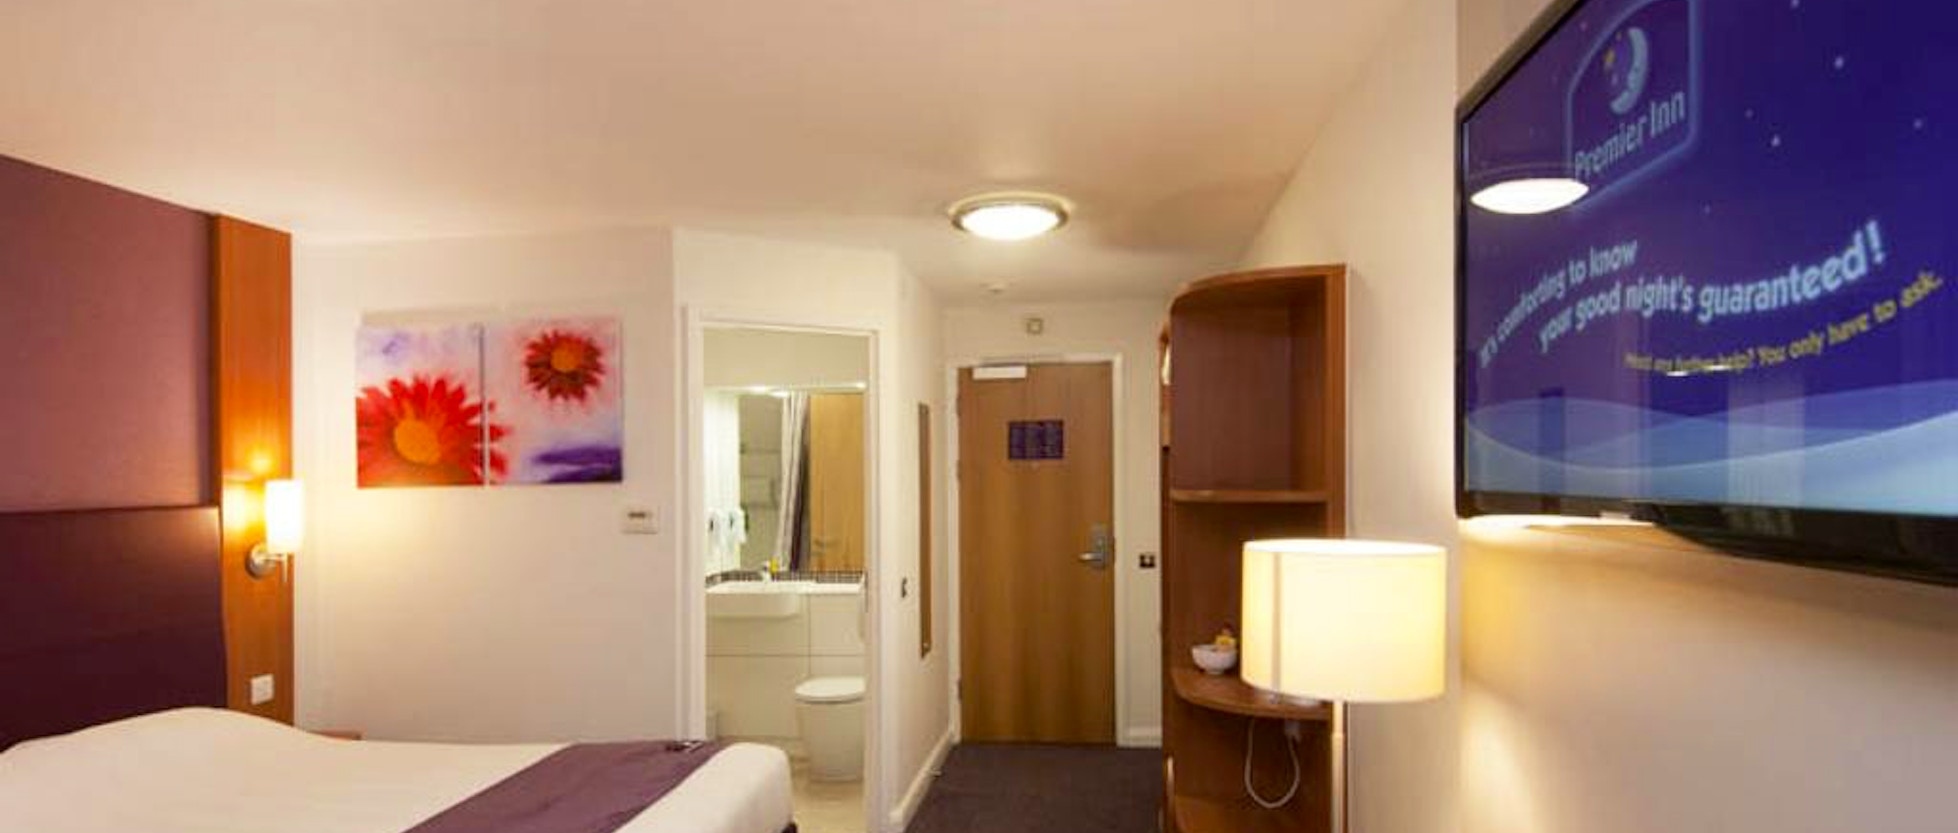 Premier Inn Londra: Catena di hotel (economica) family friendly